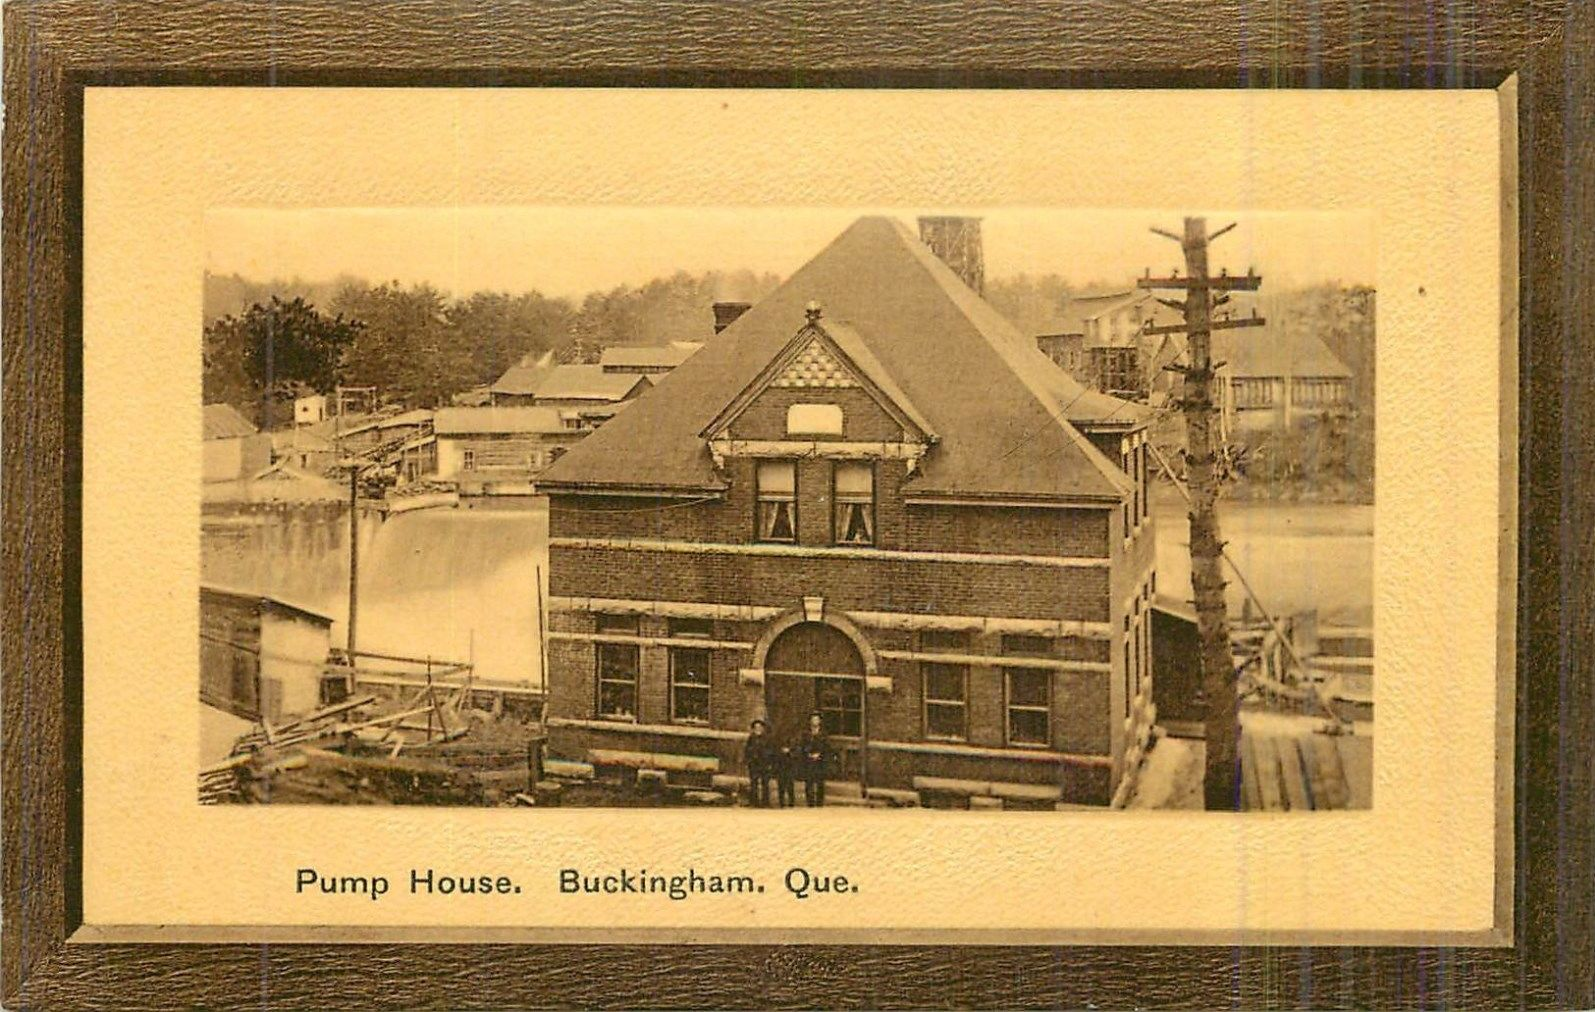 station de pompage buckingham vers 1908 pumphouse buckingham outaouais heritage. Black Bedroom Furniture Sets. Home Design Ideas